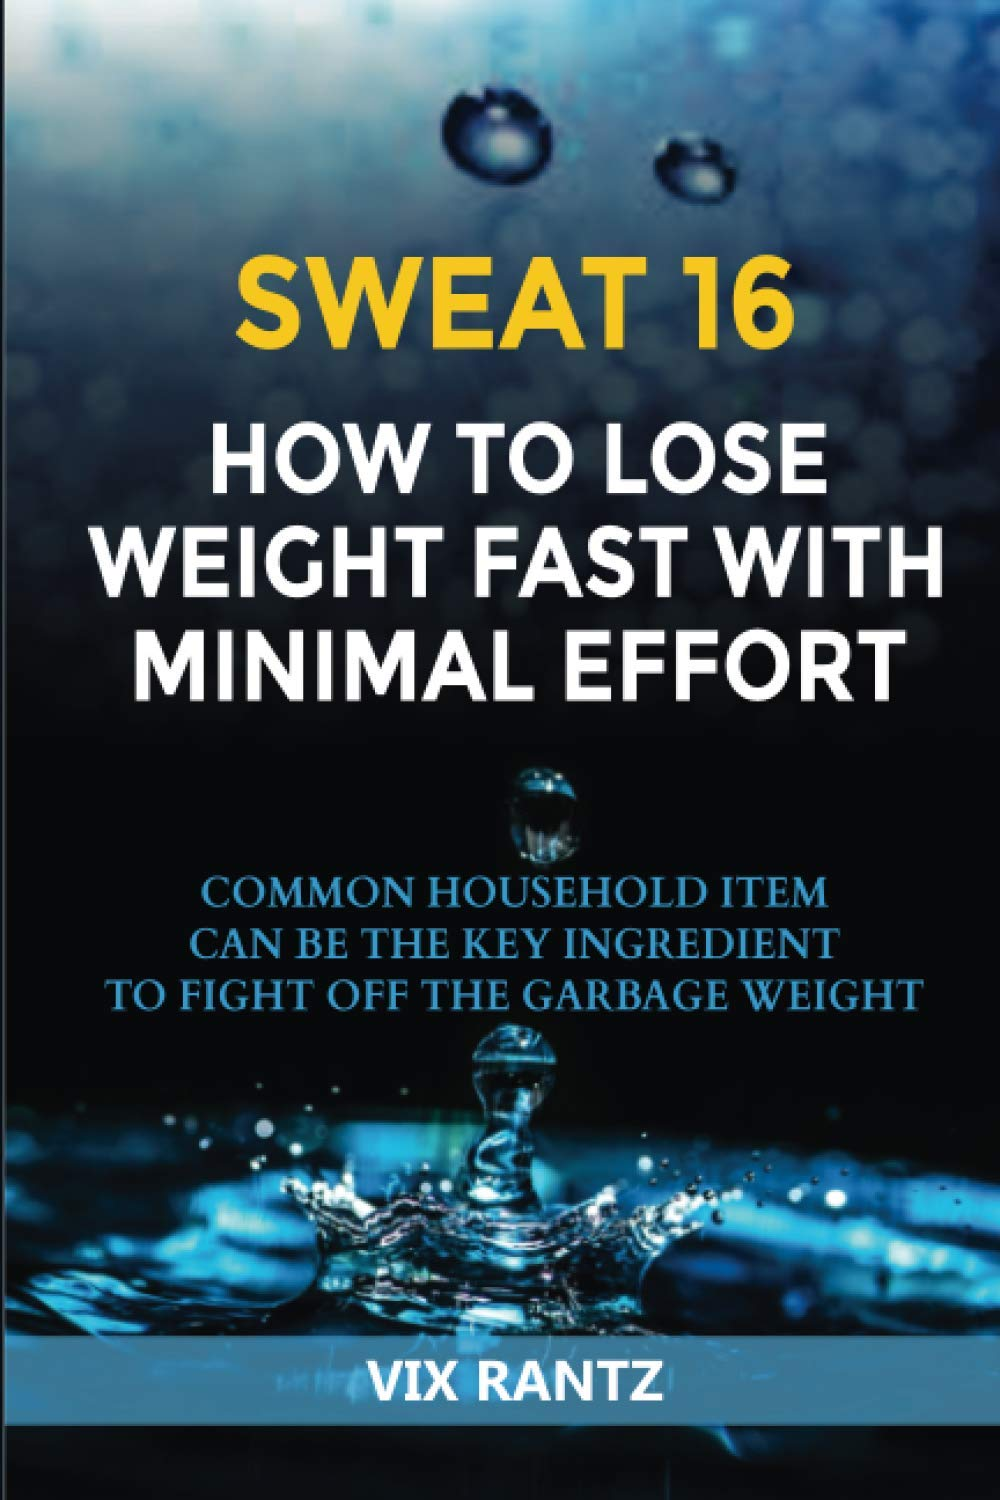 SWEAT 16 How To Lose Weight Fast With Minimal Effort: Common Household Item Can Be The Key Ingredient To Fight Off The Garbage Weight 1